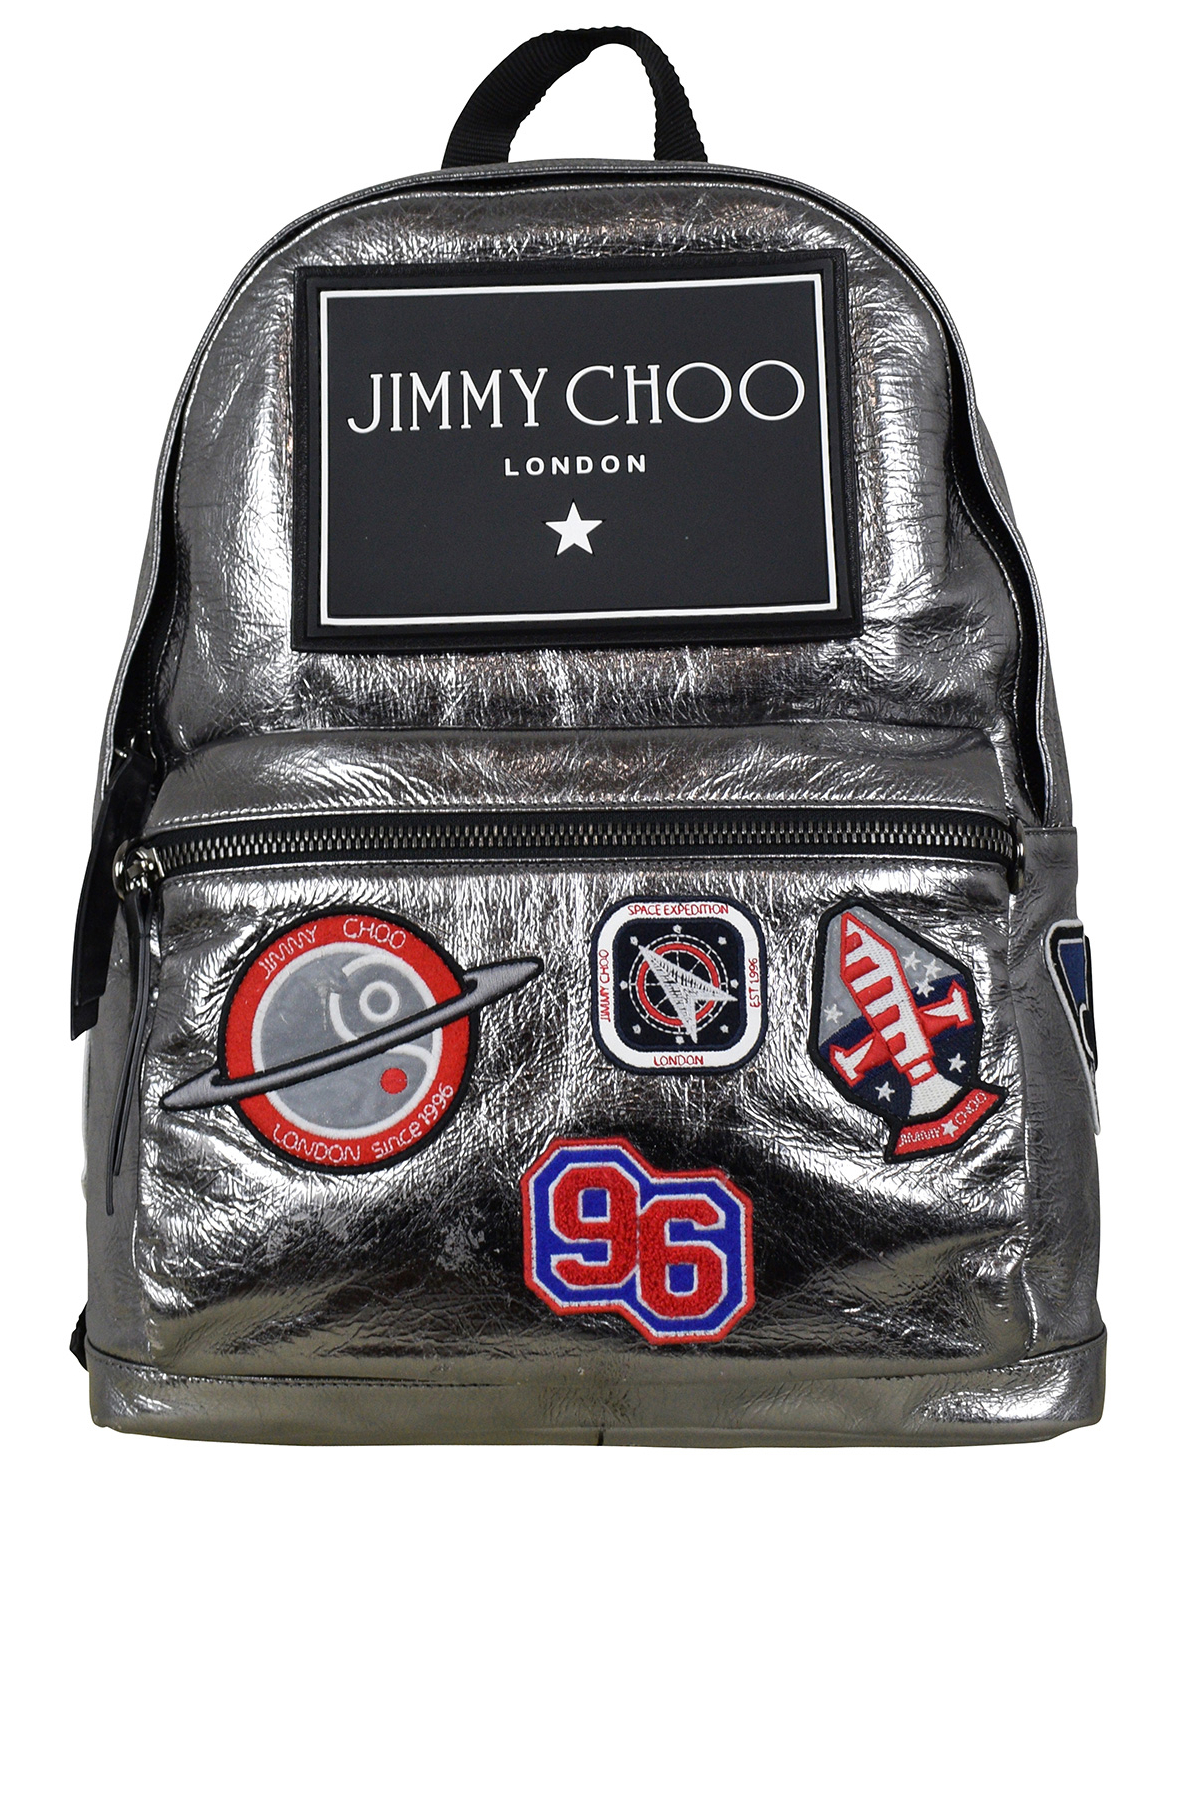 Jimmy Choo Backpack in silver leather with patches and logo